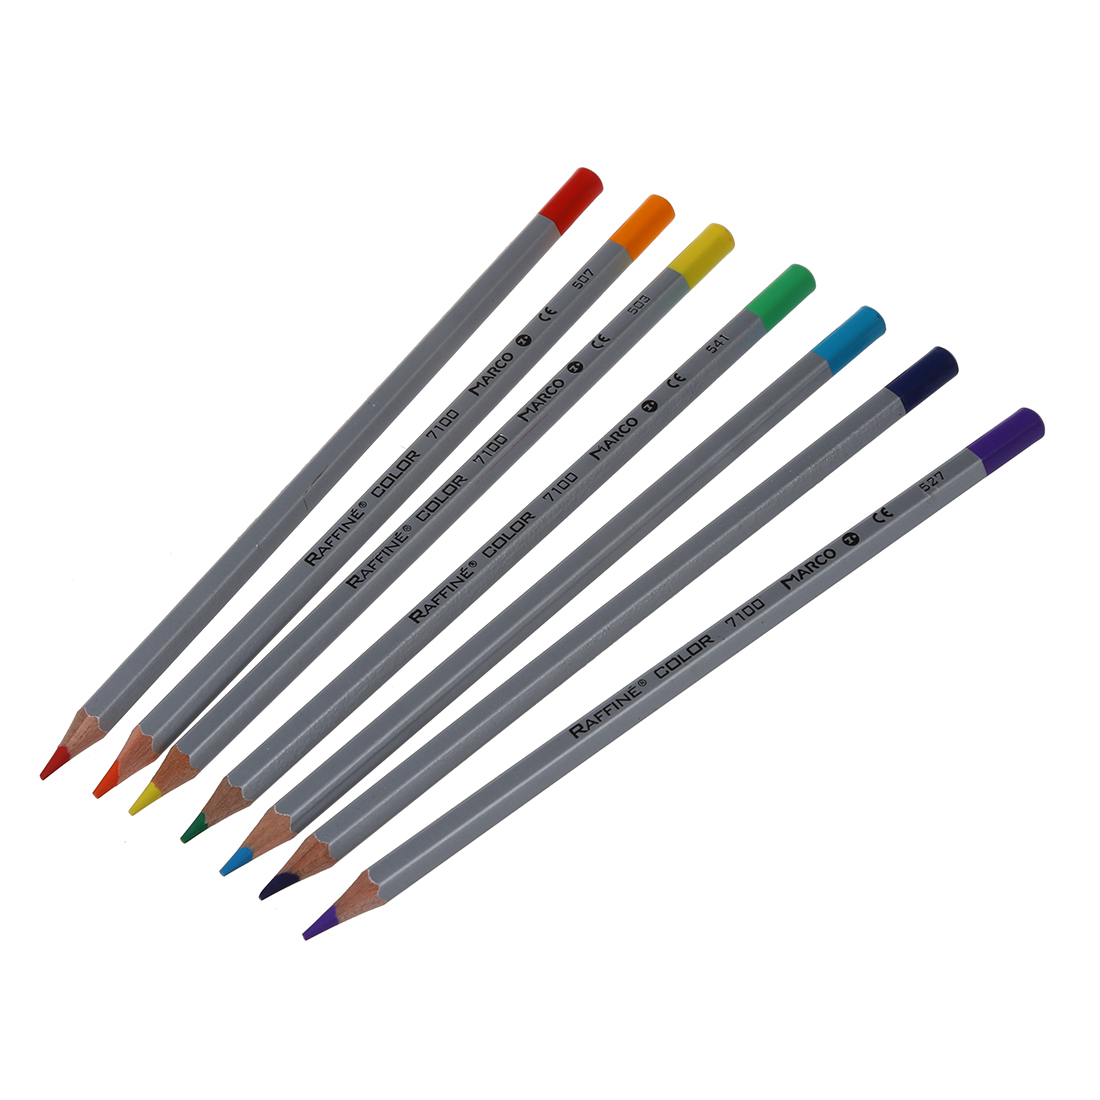 Marco Fine 72Color Art Drawing Oil Base Non-toxic Pencils Set For Artist Sketch